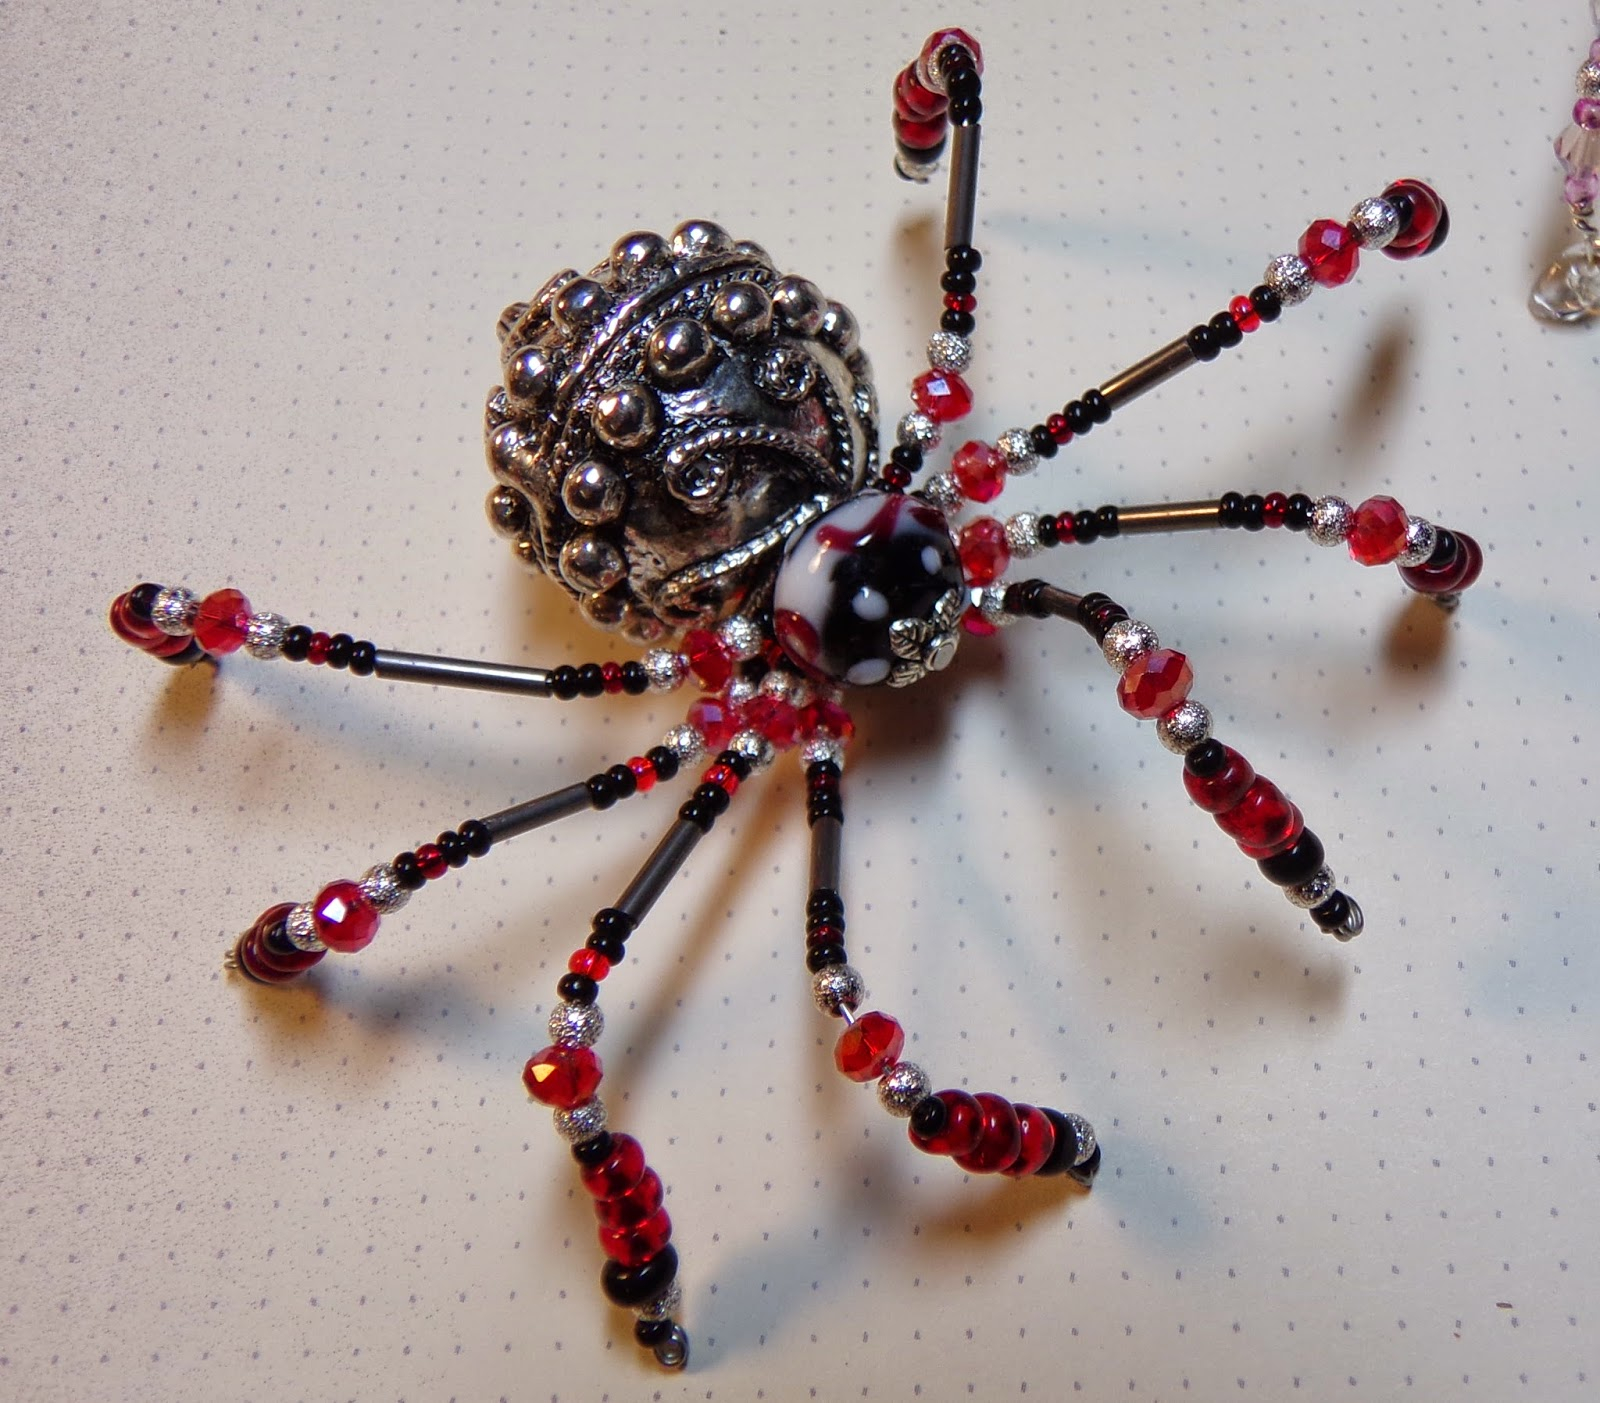 craft wire ideas juju crafts spiders made from and wire in time 1701